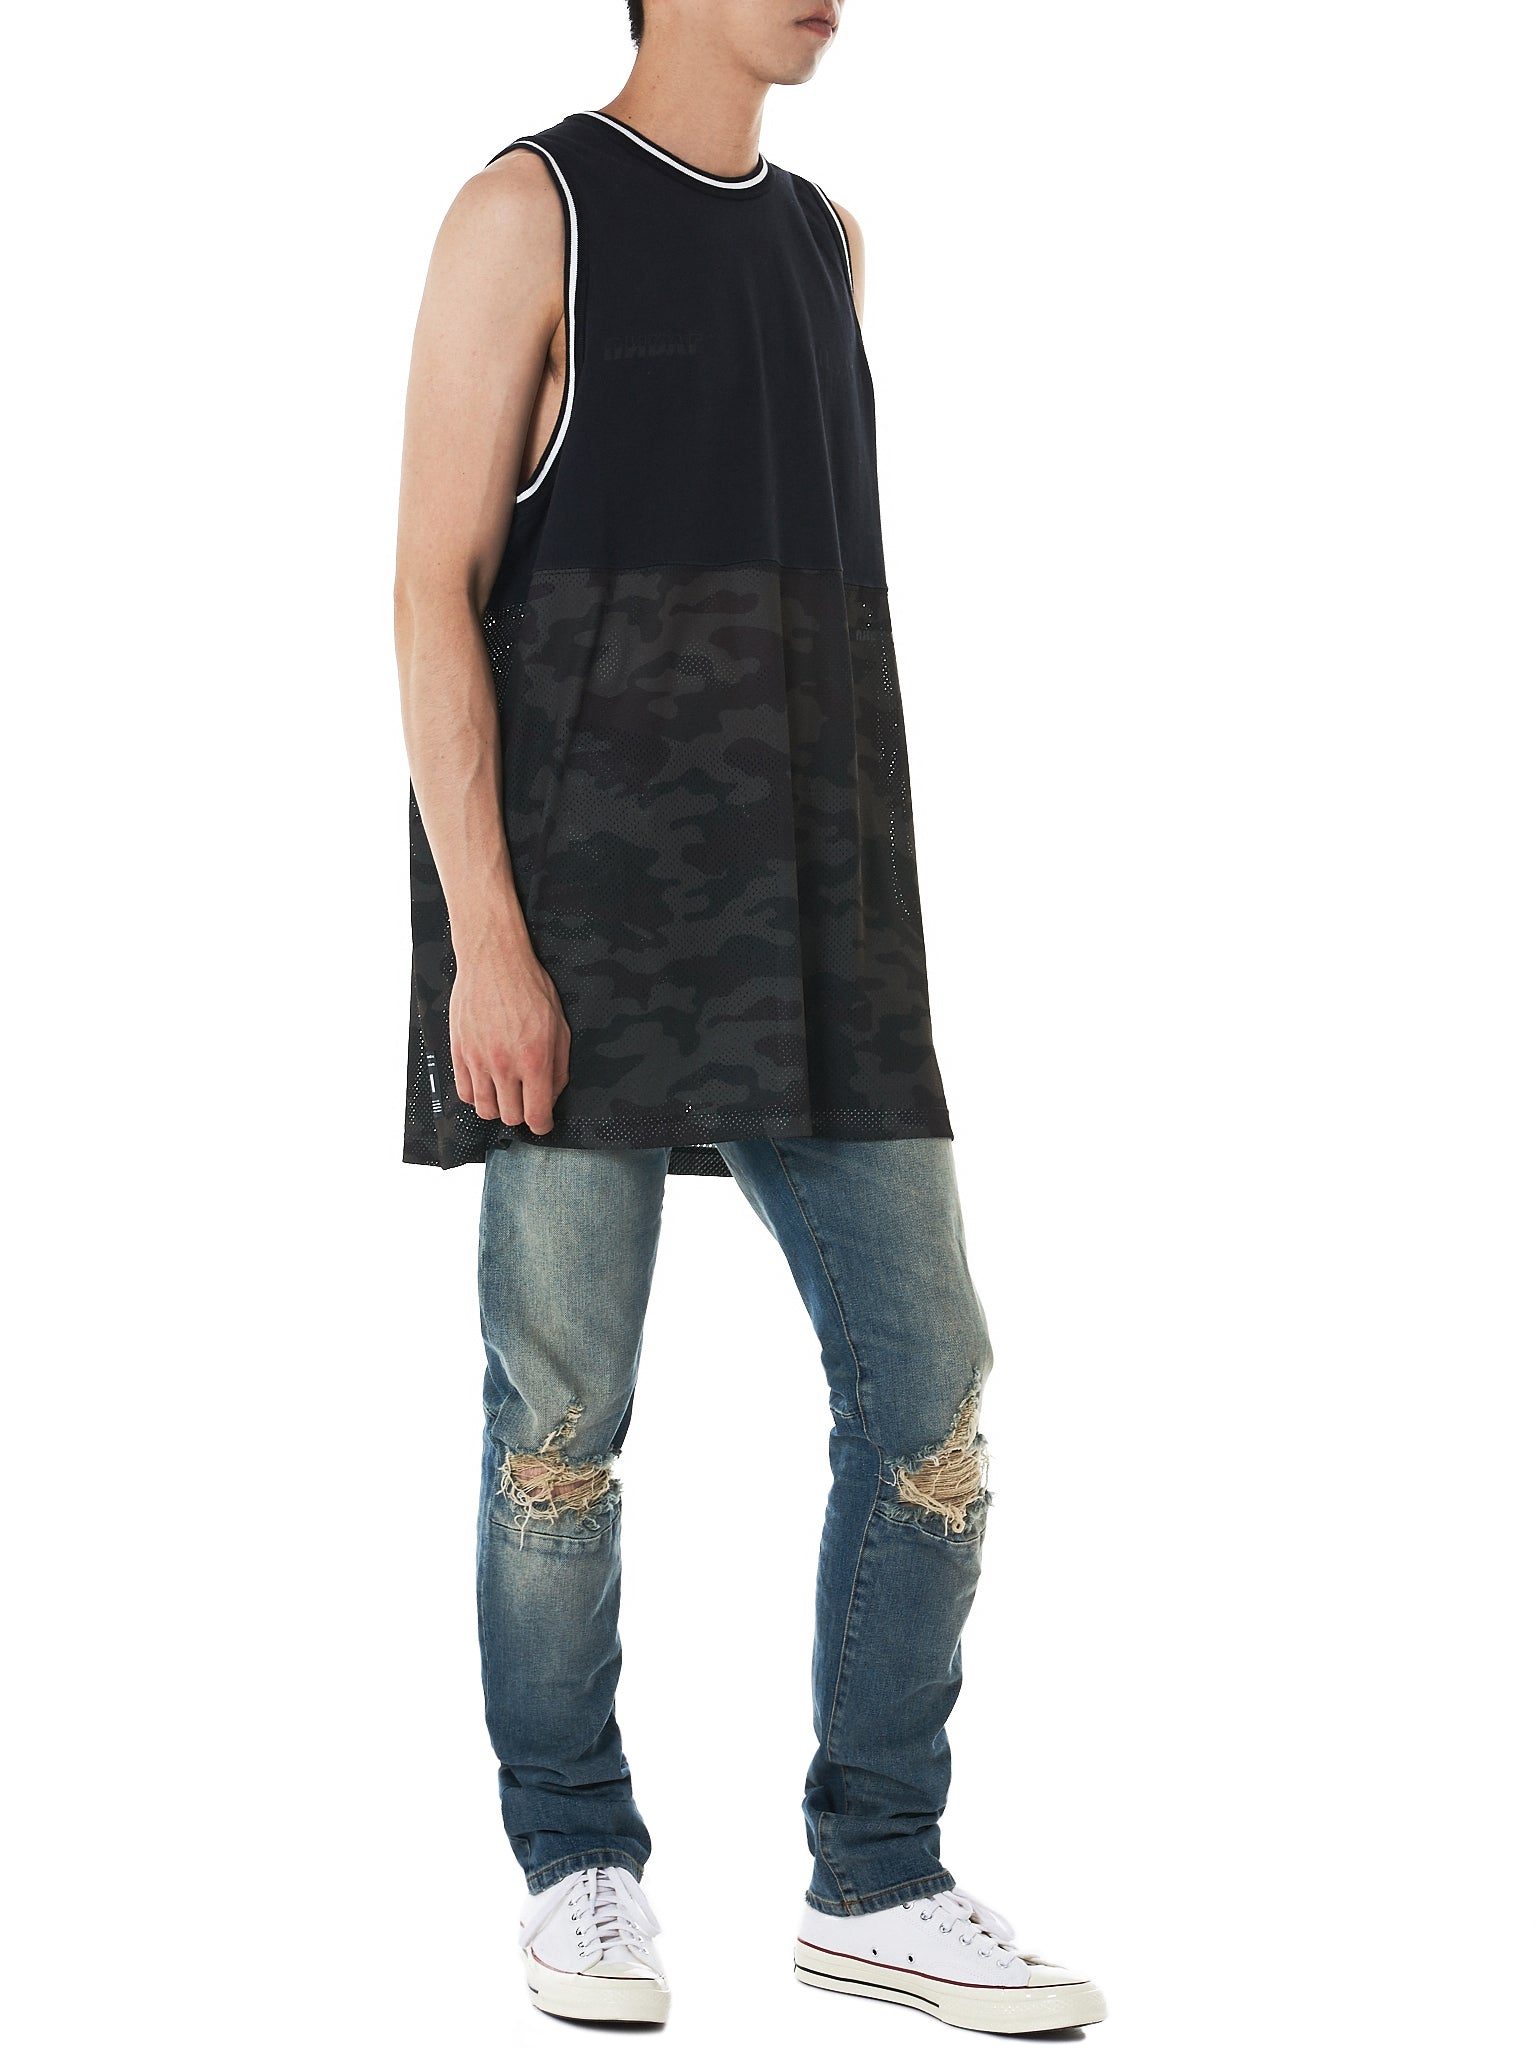 Unravel Distressed Jeans - Hlorenzo Style